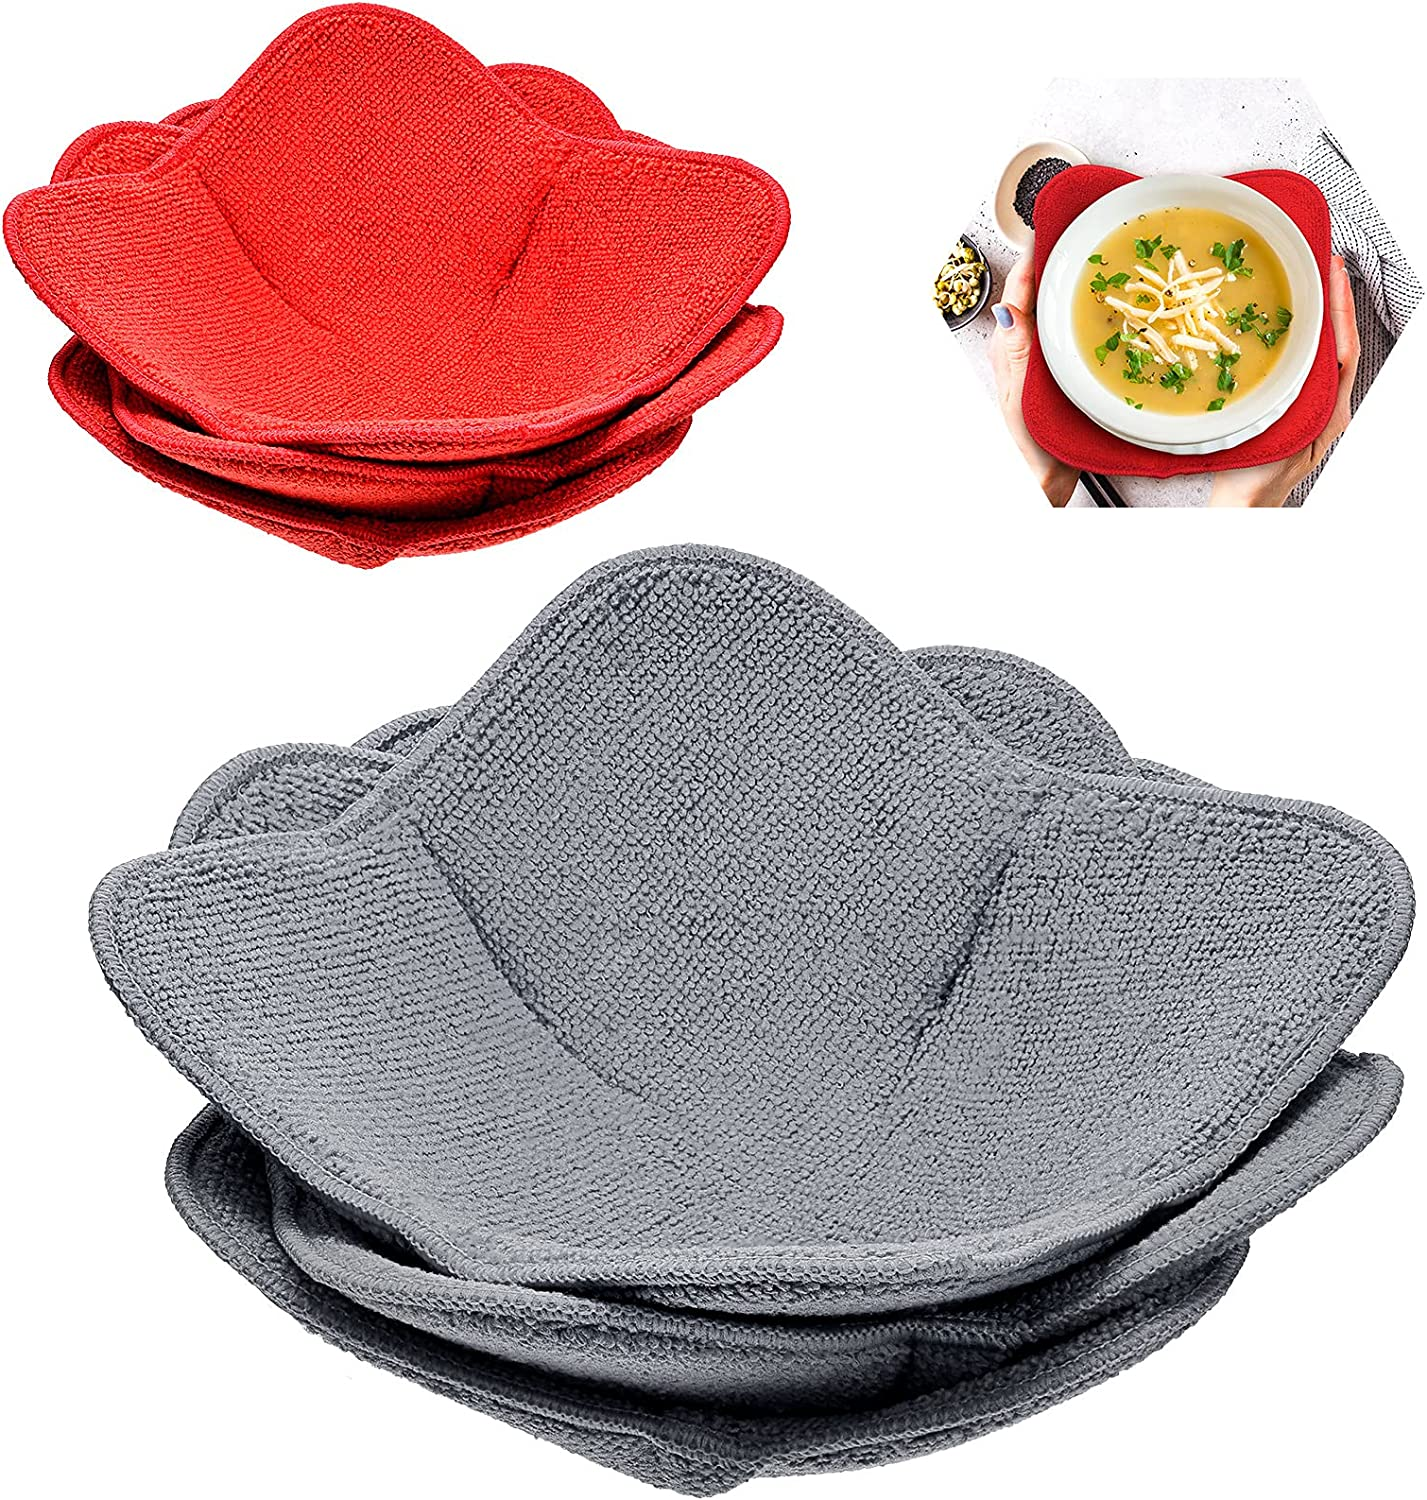 6 Pieces 2 Sizes Microwave Bowl Huggers Sponge and Microfiber Small Bowls Holder Large Bowls for Bowl Potholders Food Huggers Food Warmer Home Kitchen and Hot Bowl Holder